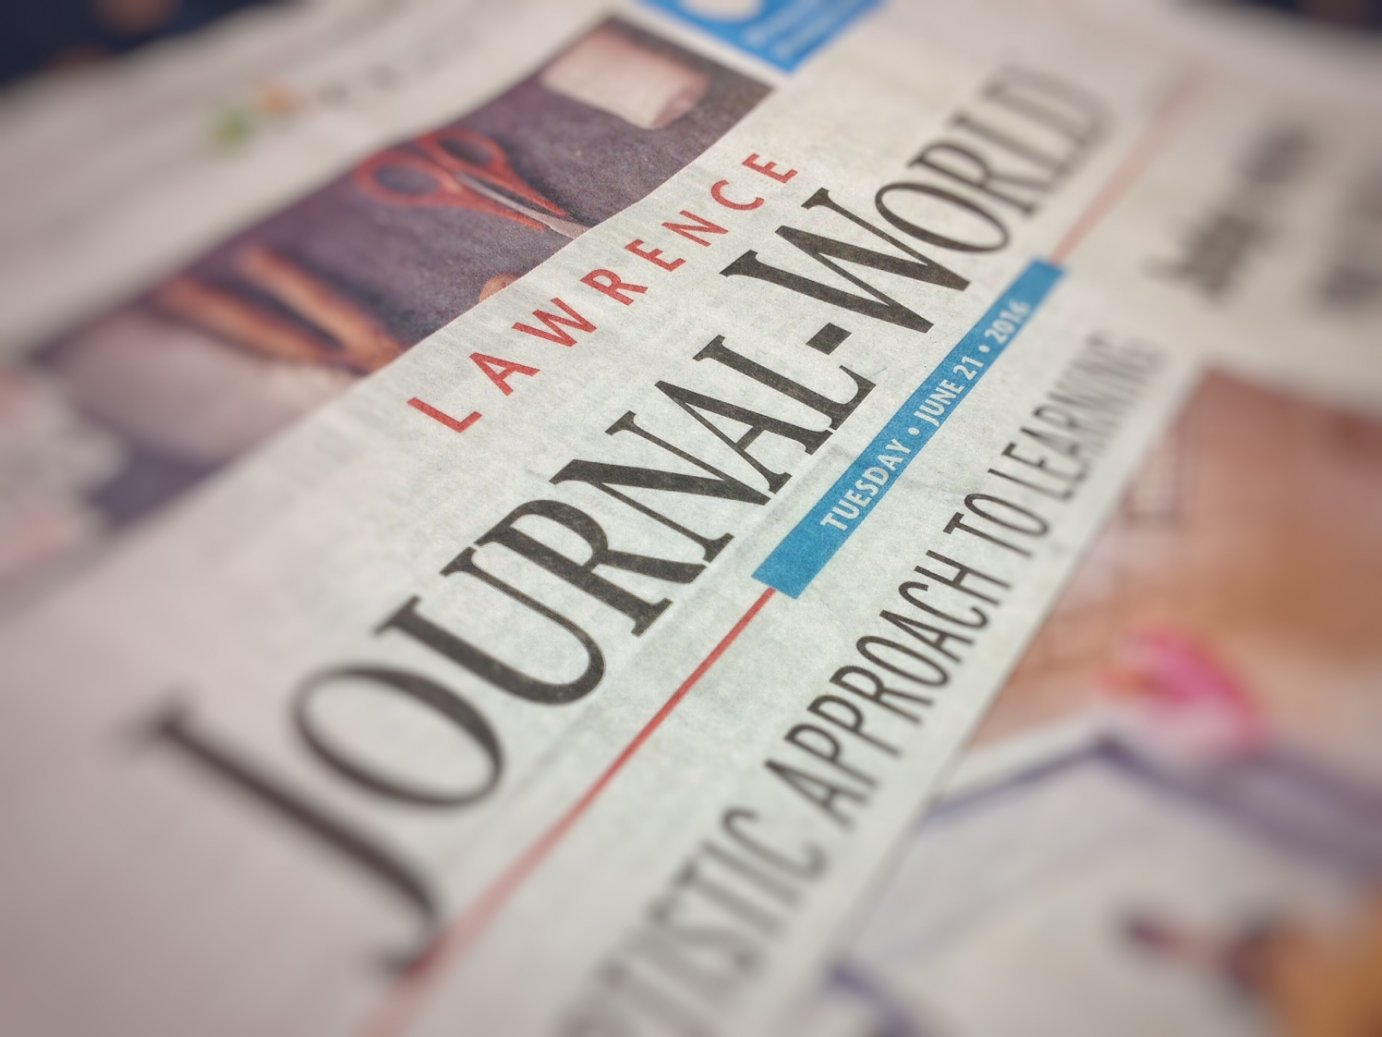 Copy of the Lawrence Journal-World. Later this year, the locally-owned paper will have new out-of-state owners. (Photo by J. Schafer)